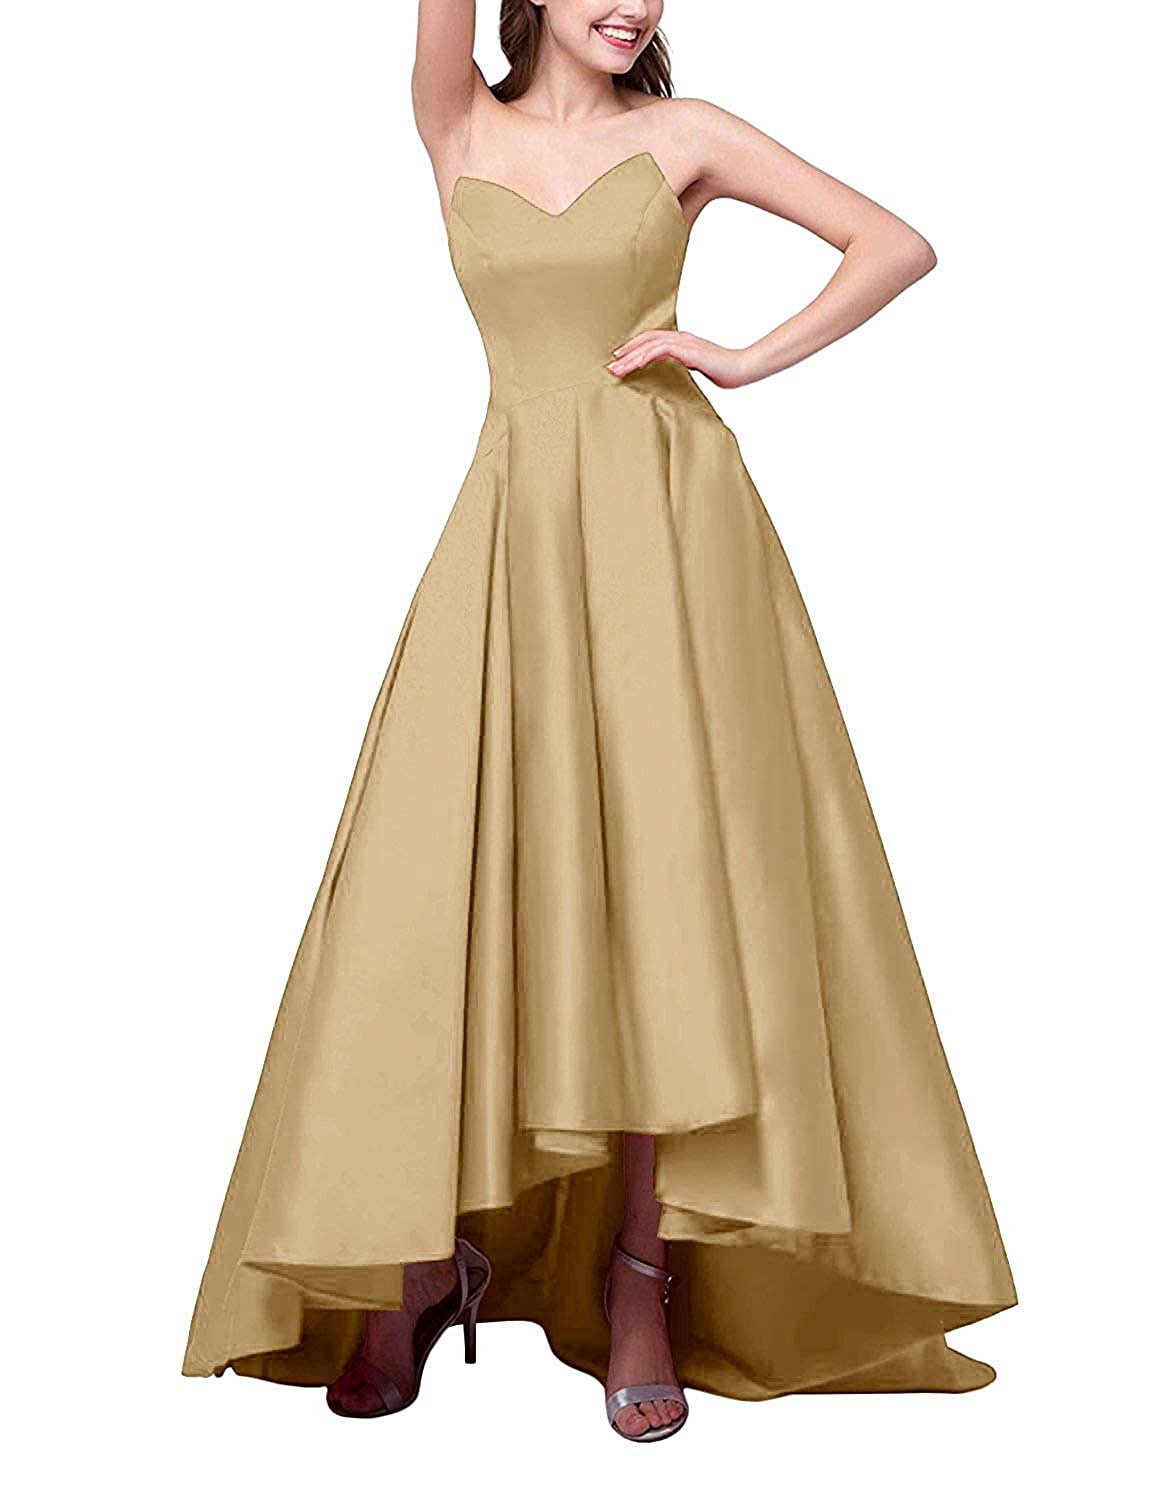 Champagne ZLQQ Women's V Neck Satin High Low Prom Dresses with Pockets Formal LongEvening Party Gowns